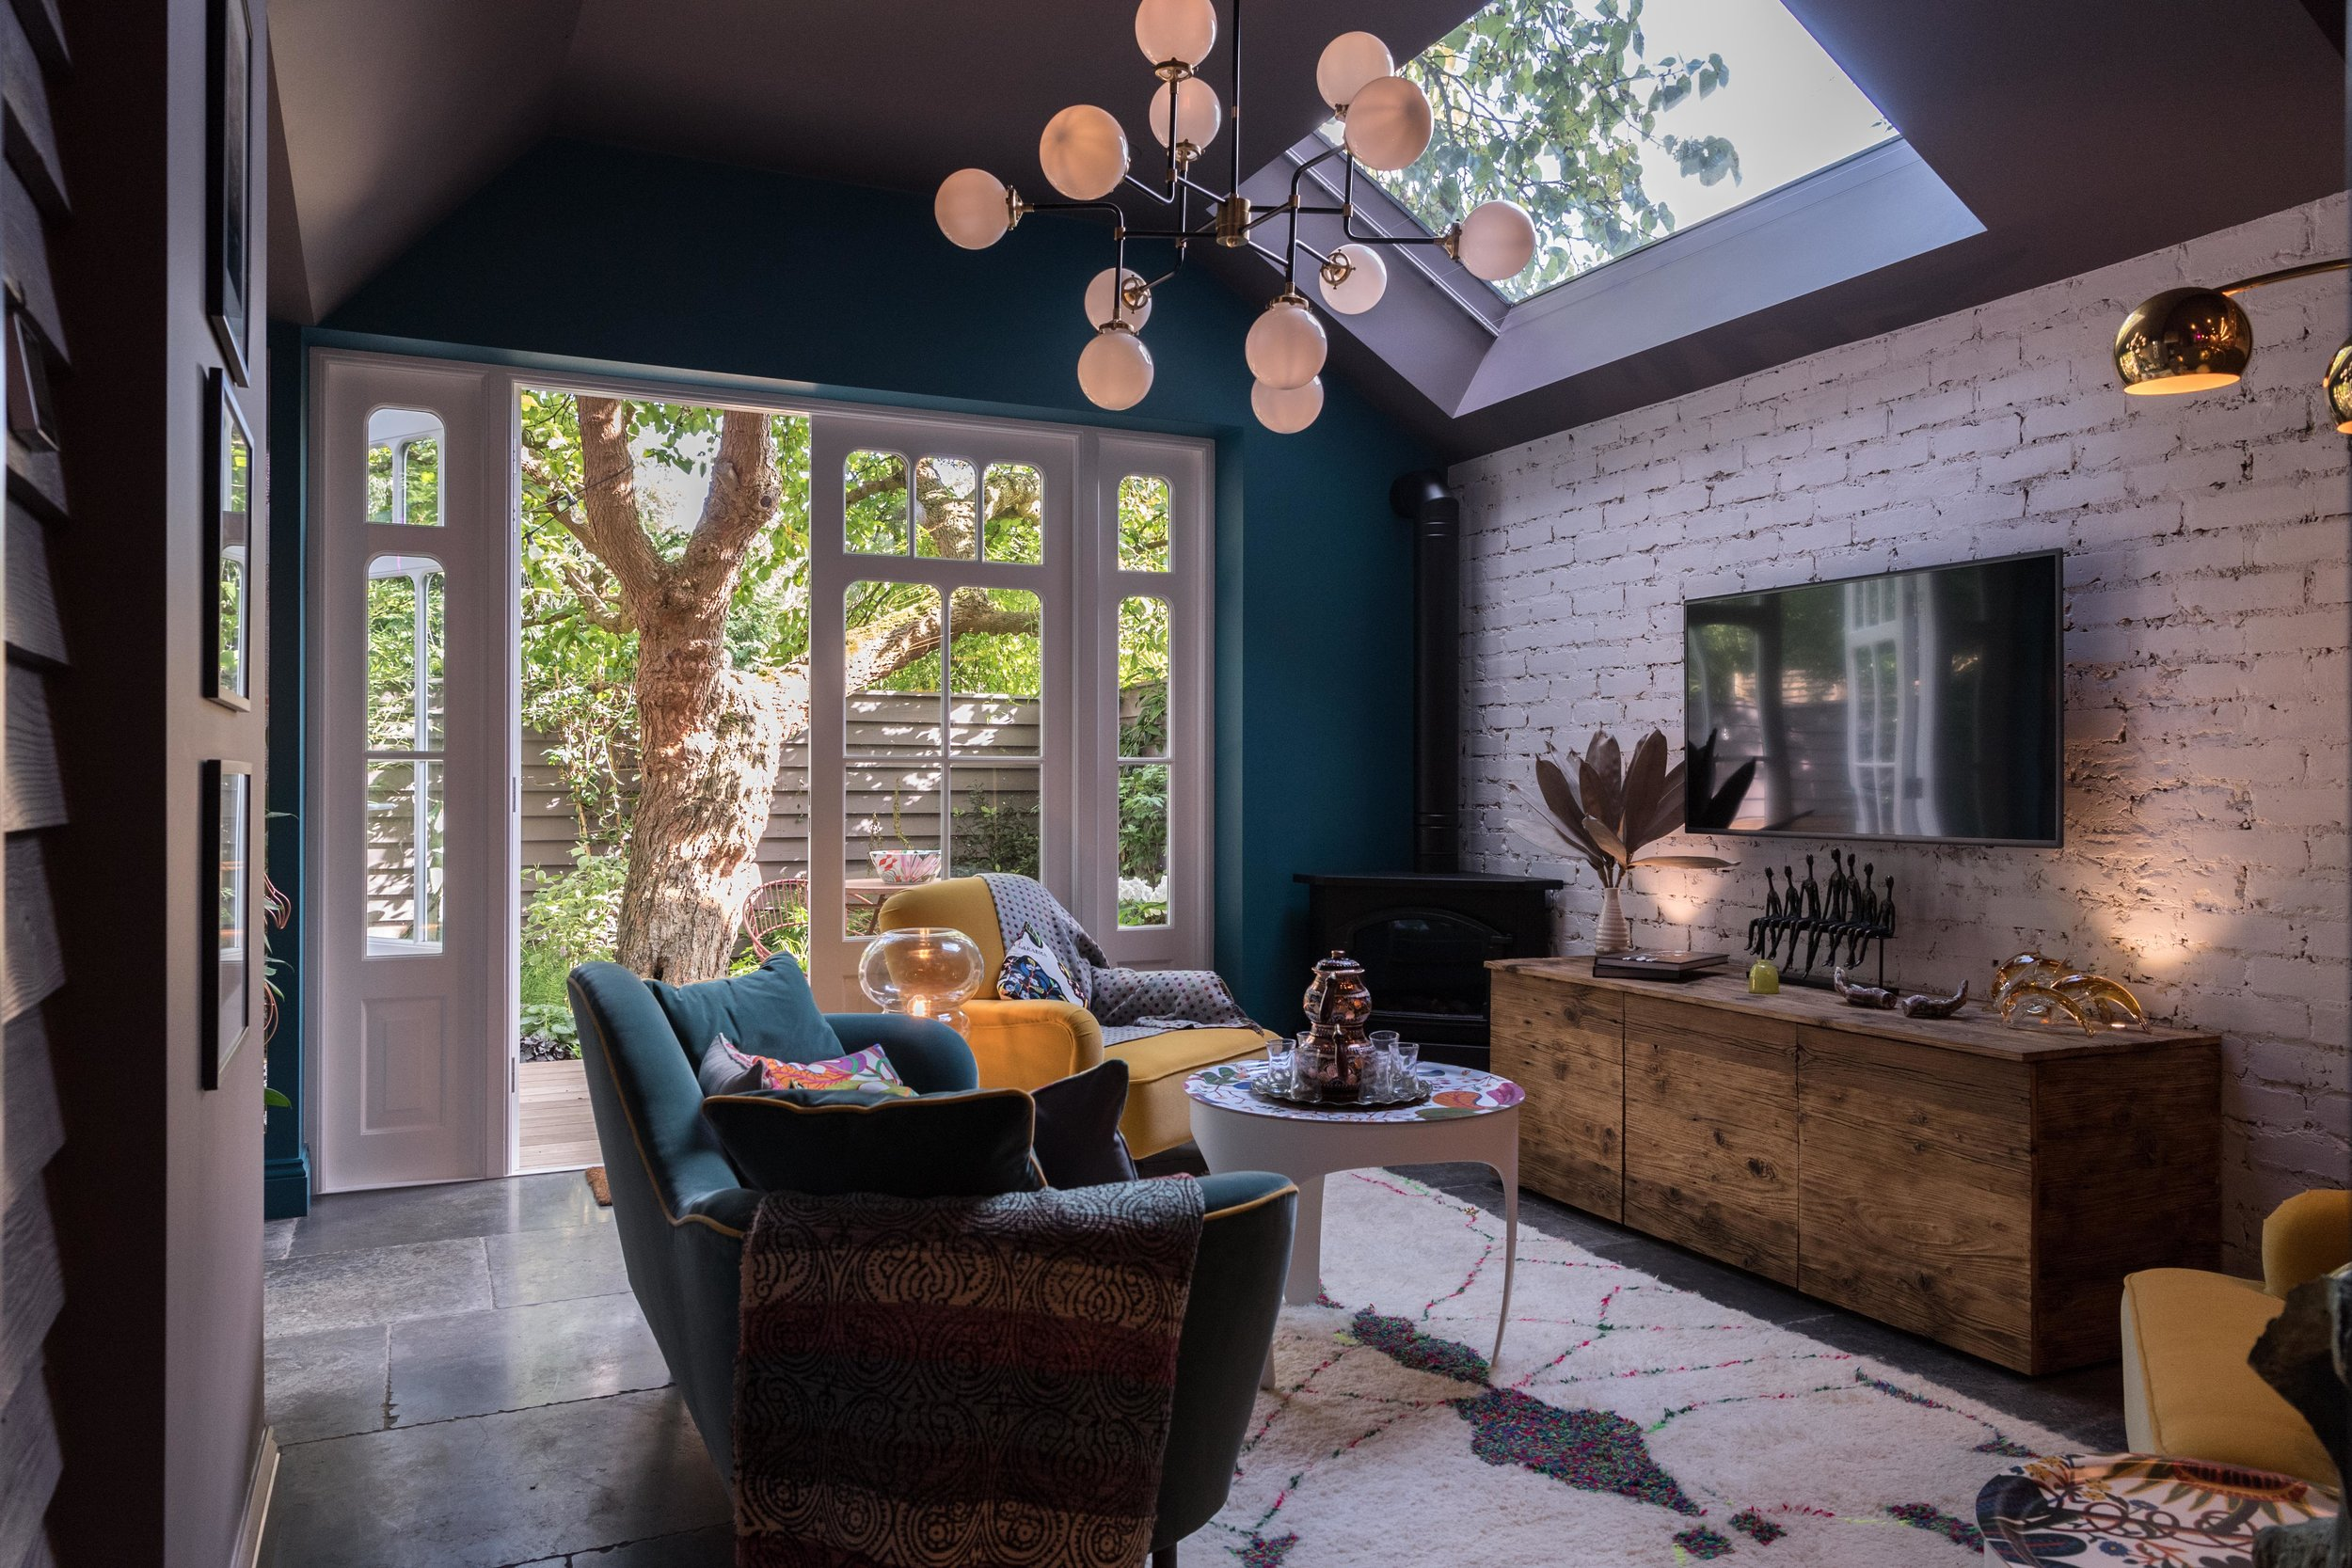 Church Crescent living room chandelier and brick wall.jpg